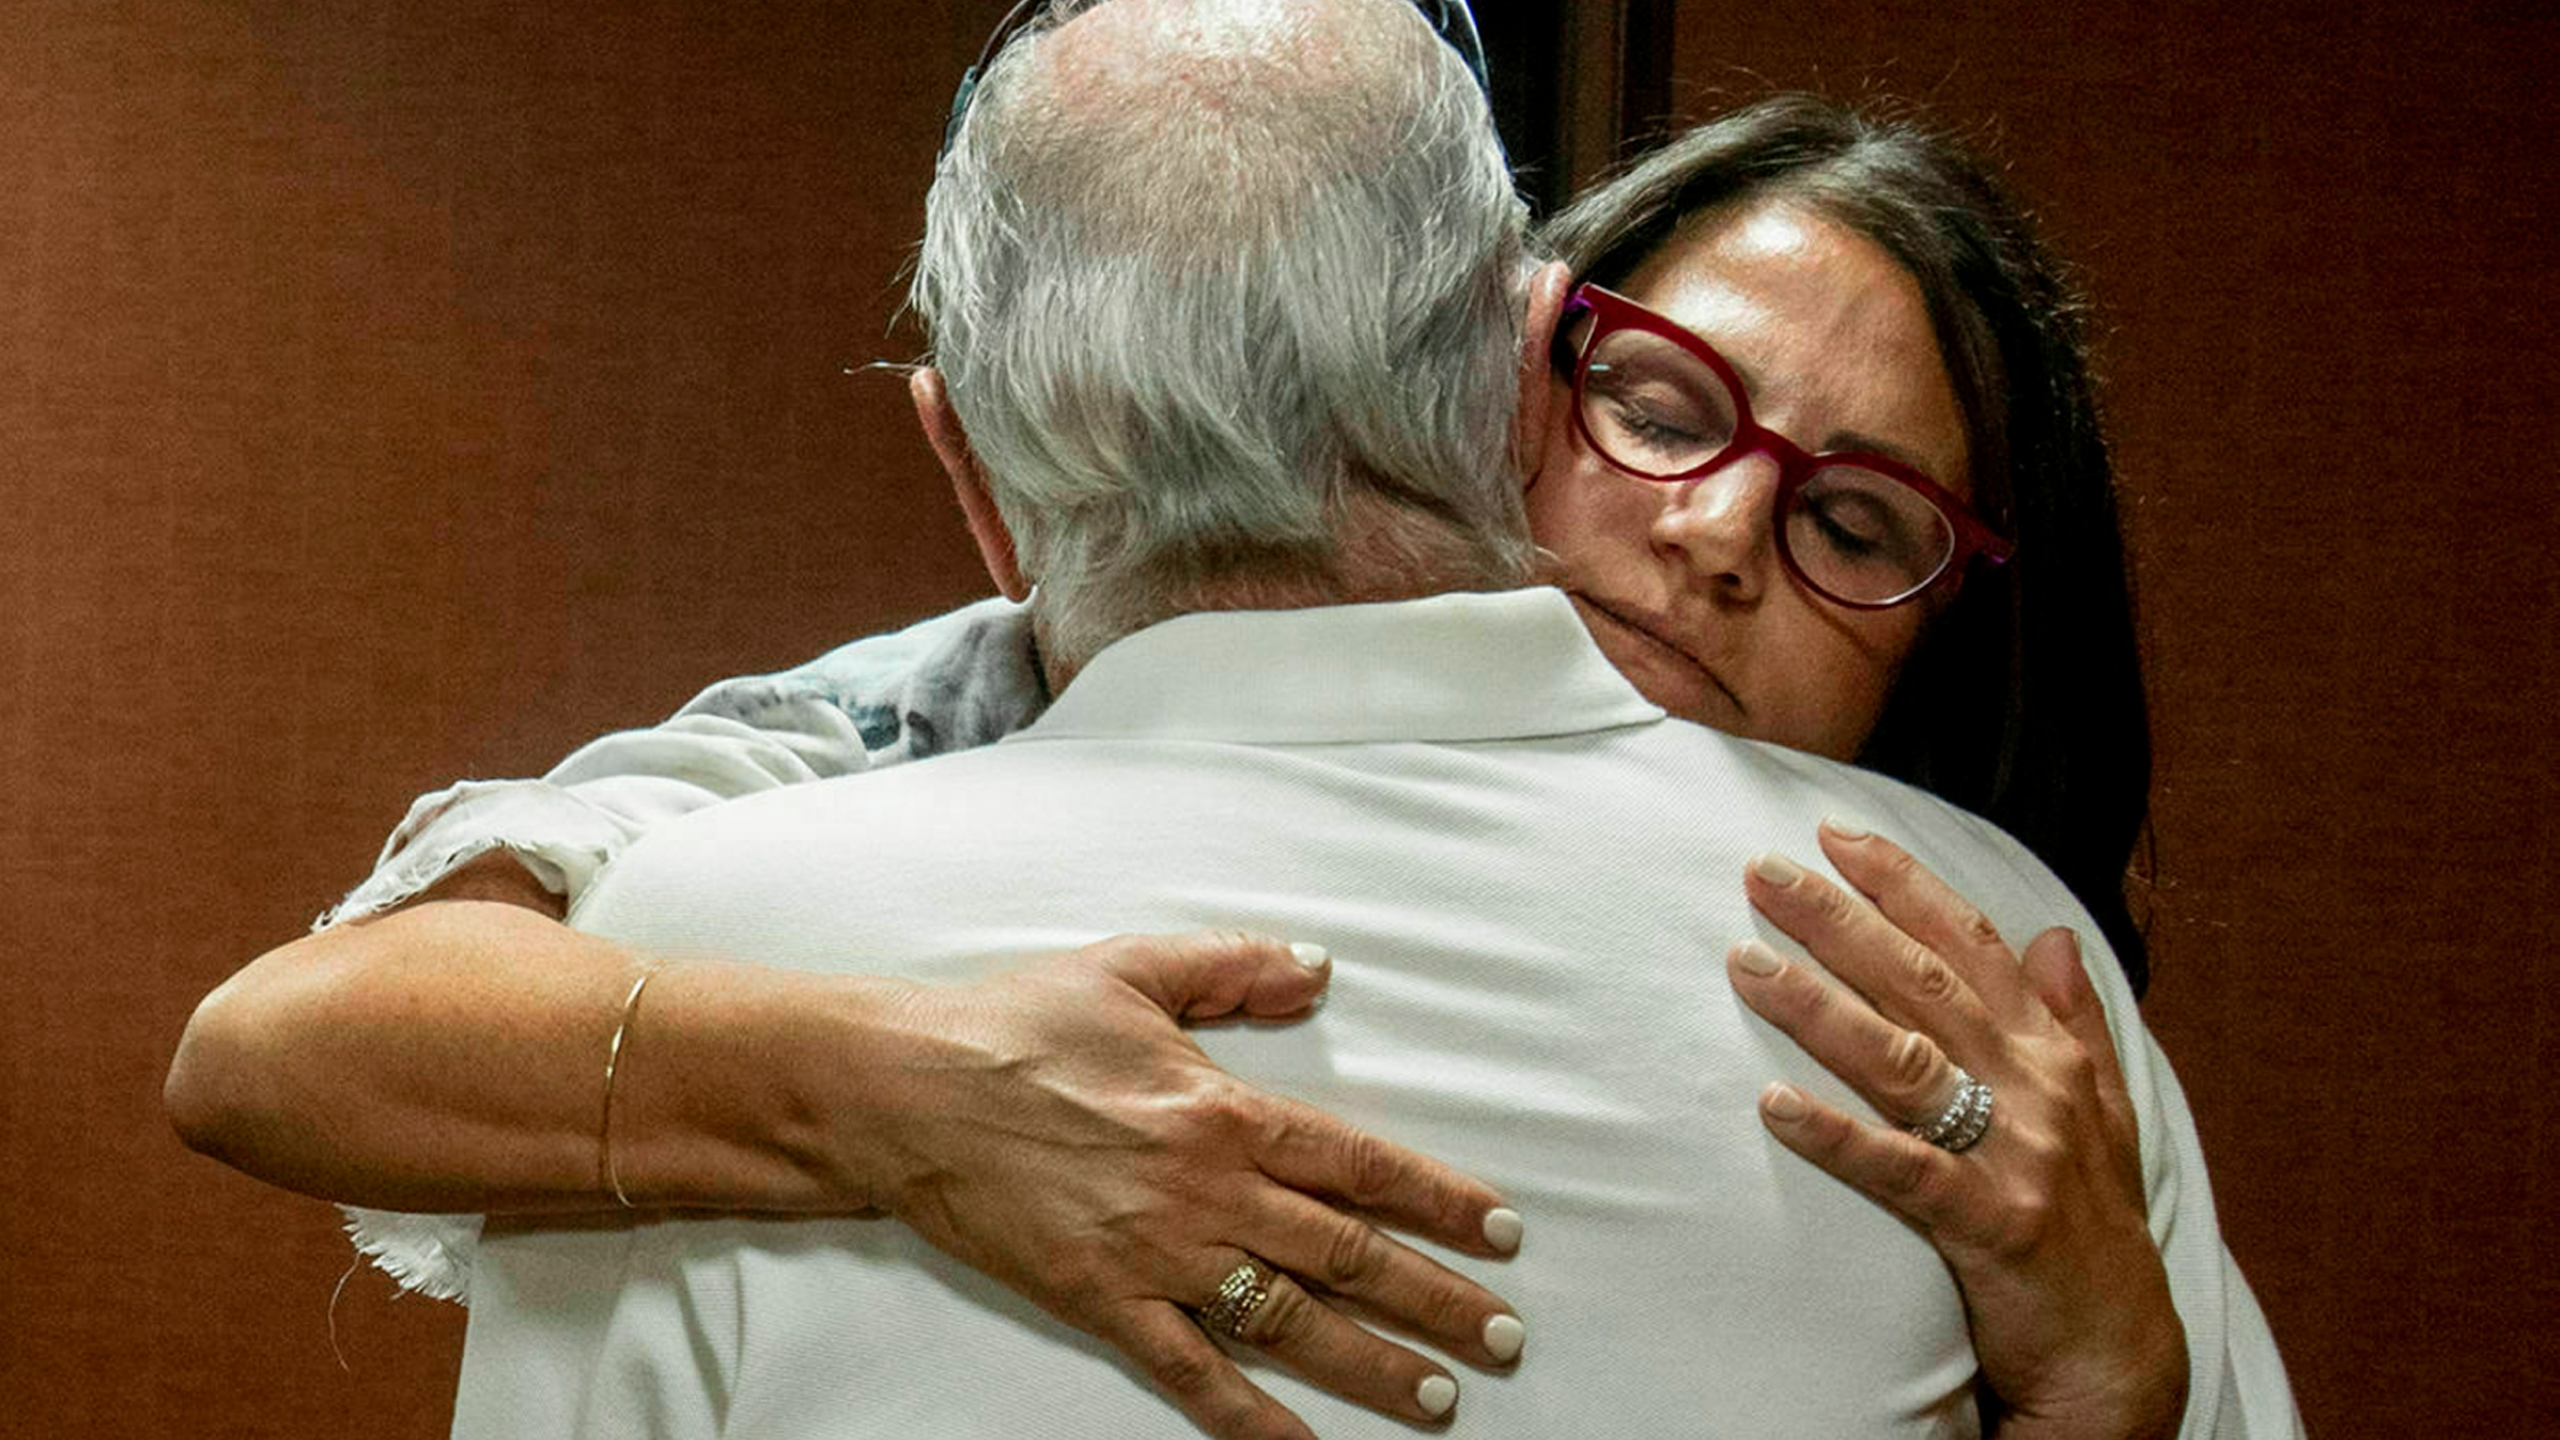 In this July 11, 2019 file photo, Tanya Gersh, a Montana real estate agent, embraces her father Lloyd Rosenstein following a hearing at the Russell Smith Federal Courthouse in Missoula. Mont. (Ben Allen/The Missoulian via AP, File)